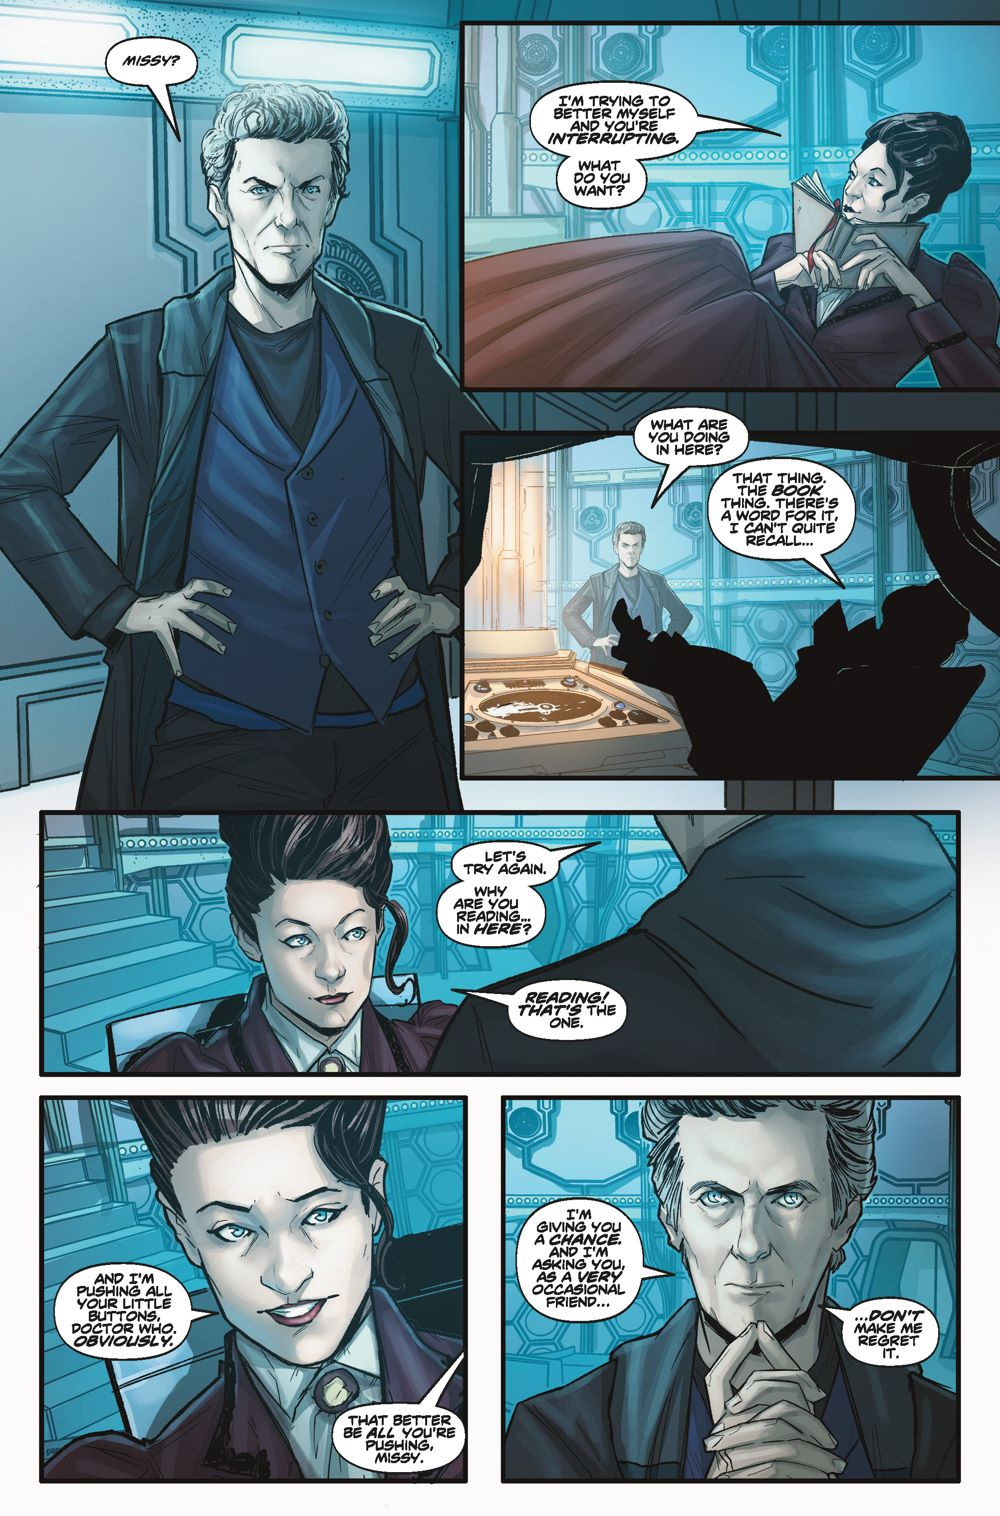 Doctor-Who-Missy-2-Interior_Page_1 ComicList Previews: DOCTOR WHO MISSY #2